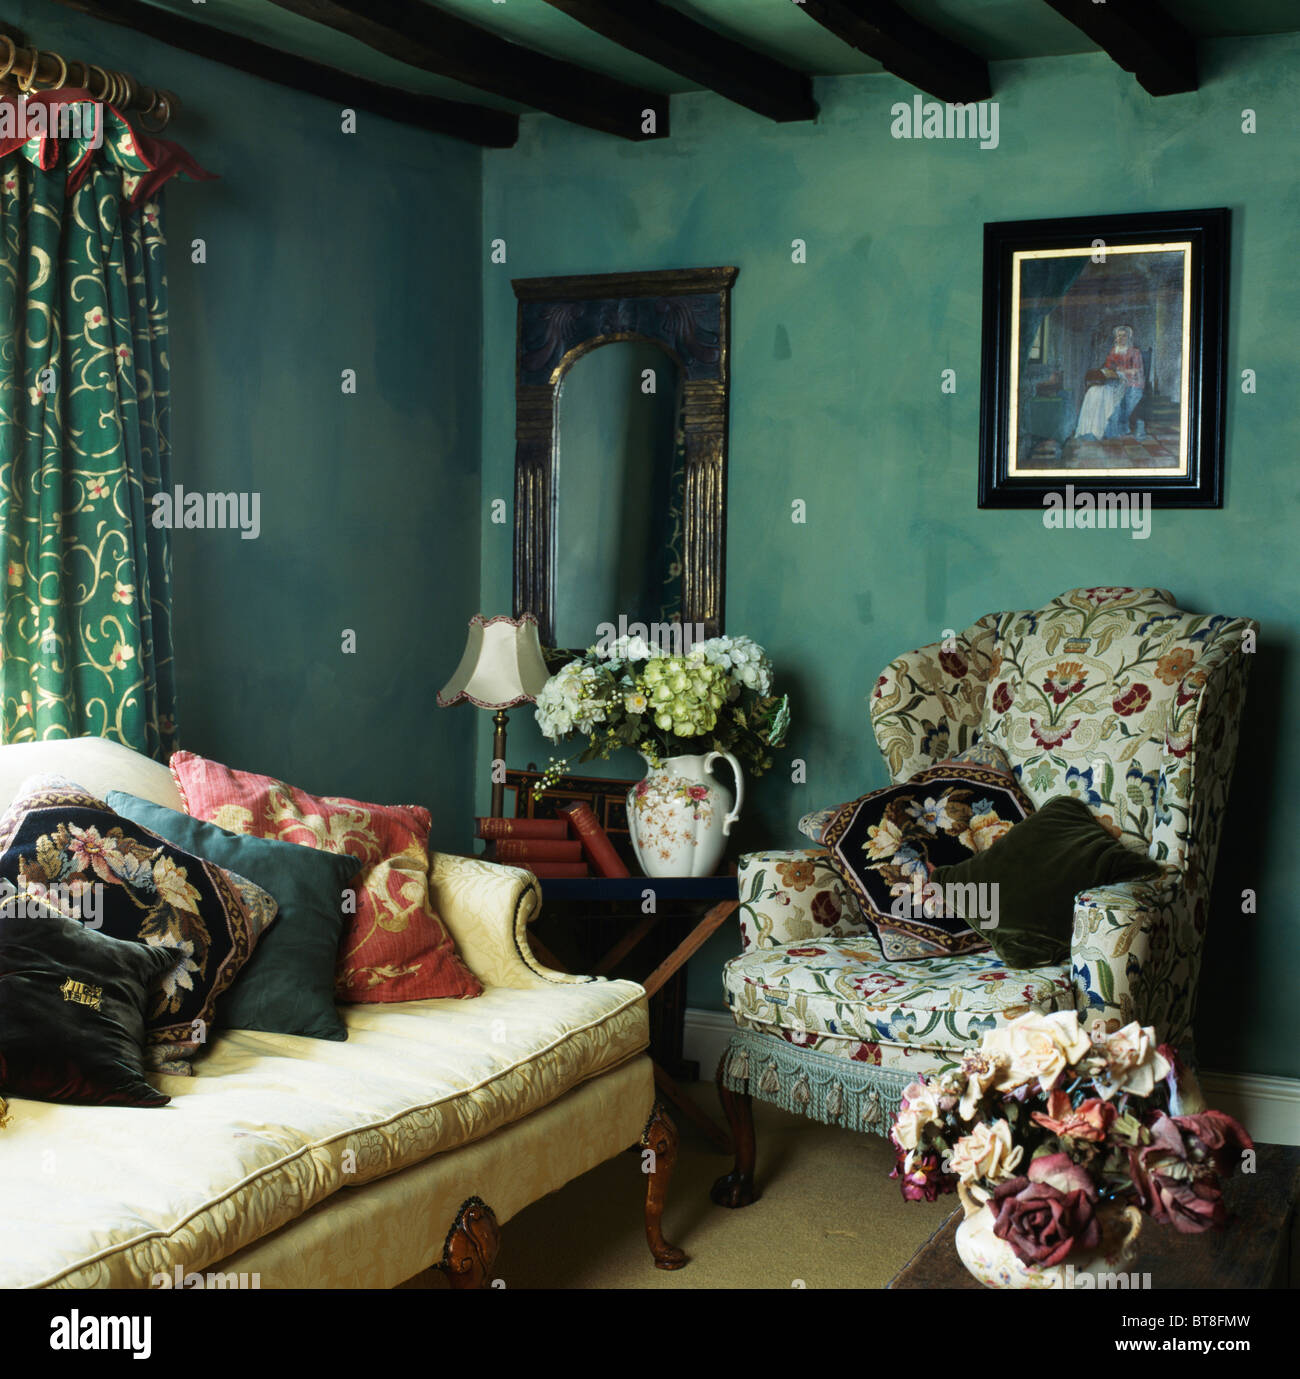 Picture On Wall Above Patterned Wing Chair In Dark Green Cottage Living Room With Sponge Effect Painted Walls